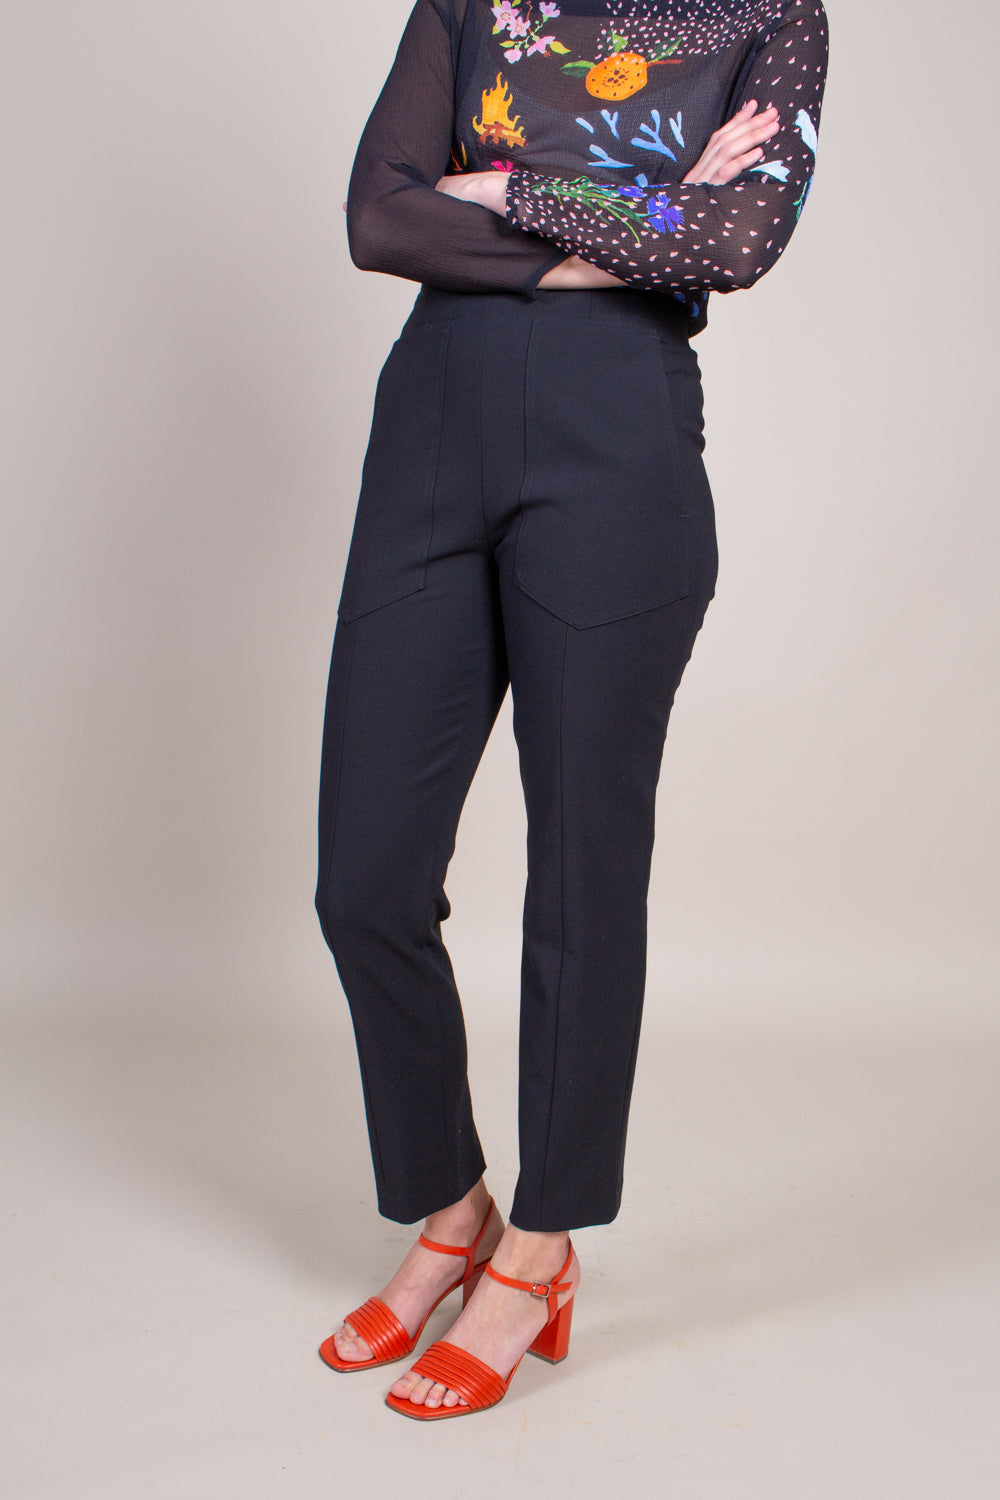 Anson Stretch Pant in Black